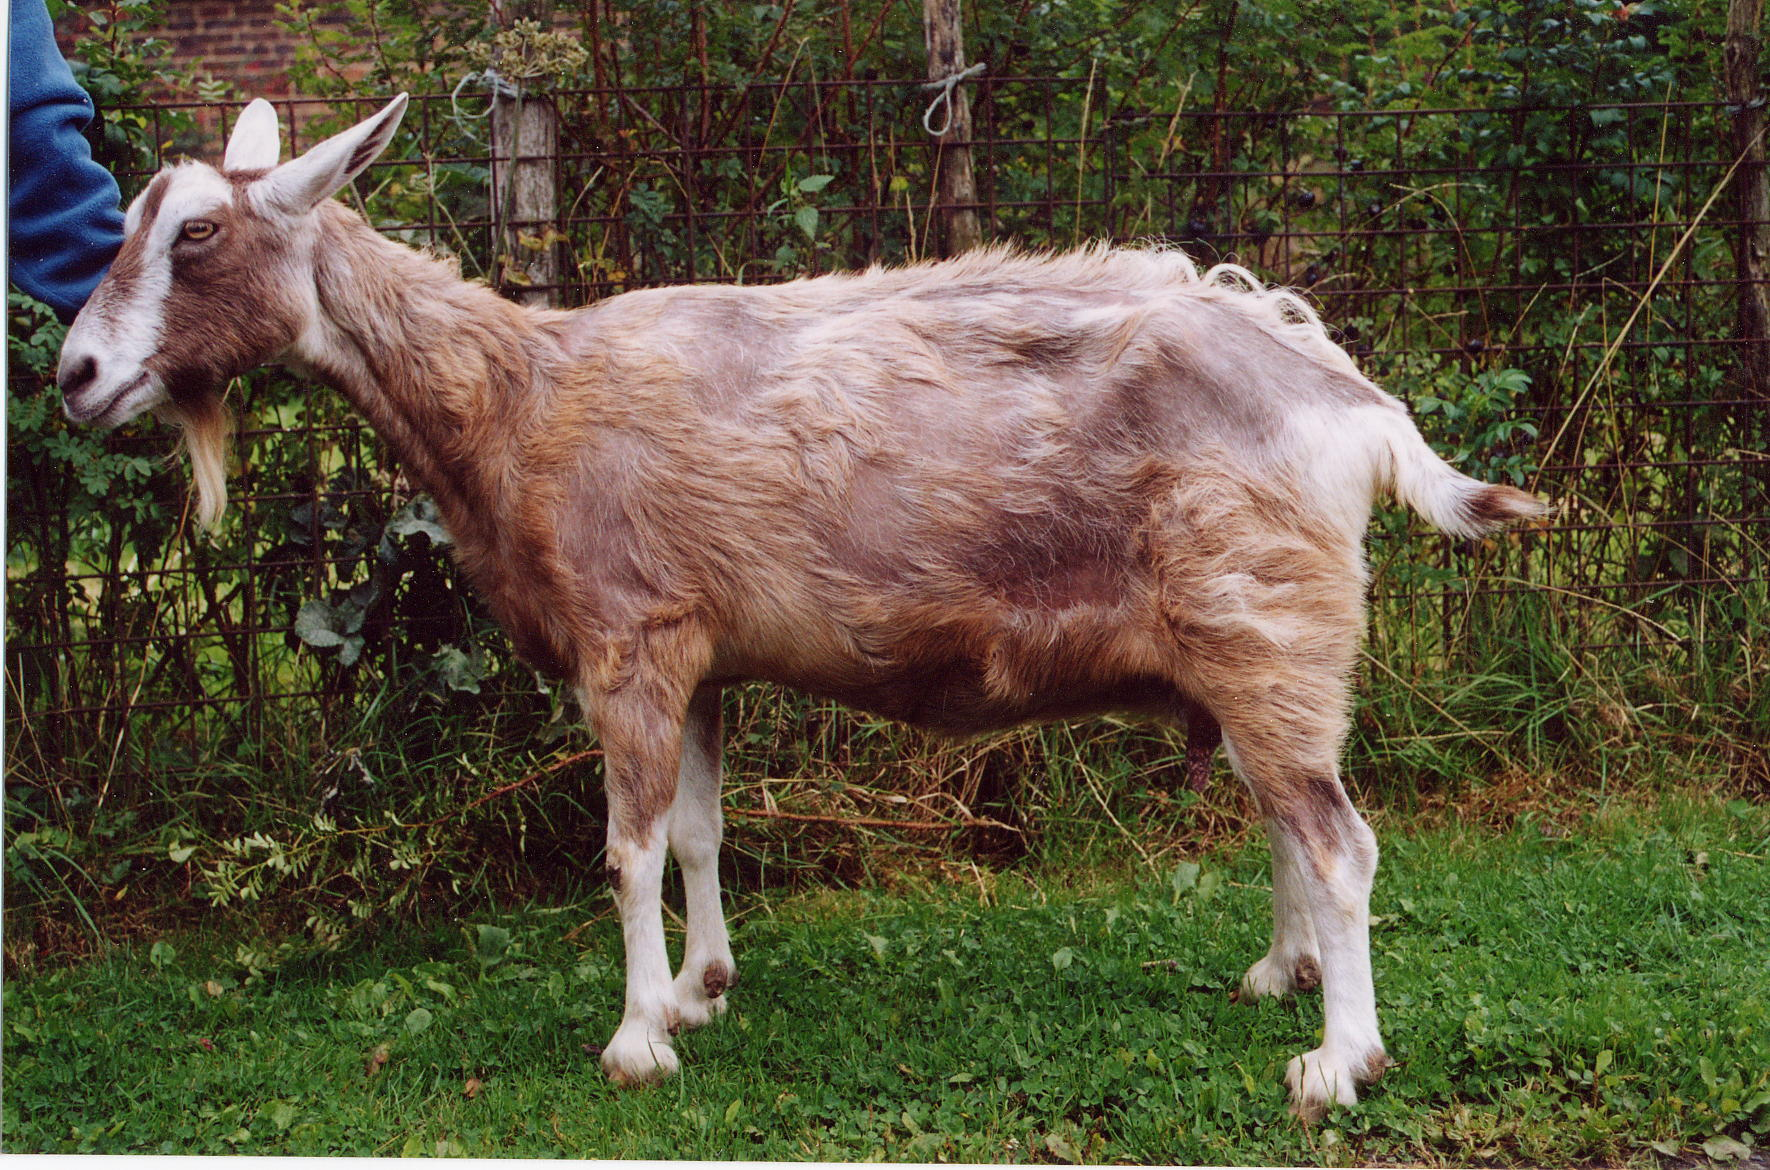 A goat with considerable hair loss resulting from itching due to mites, which can cause skin problems in goats